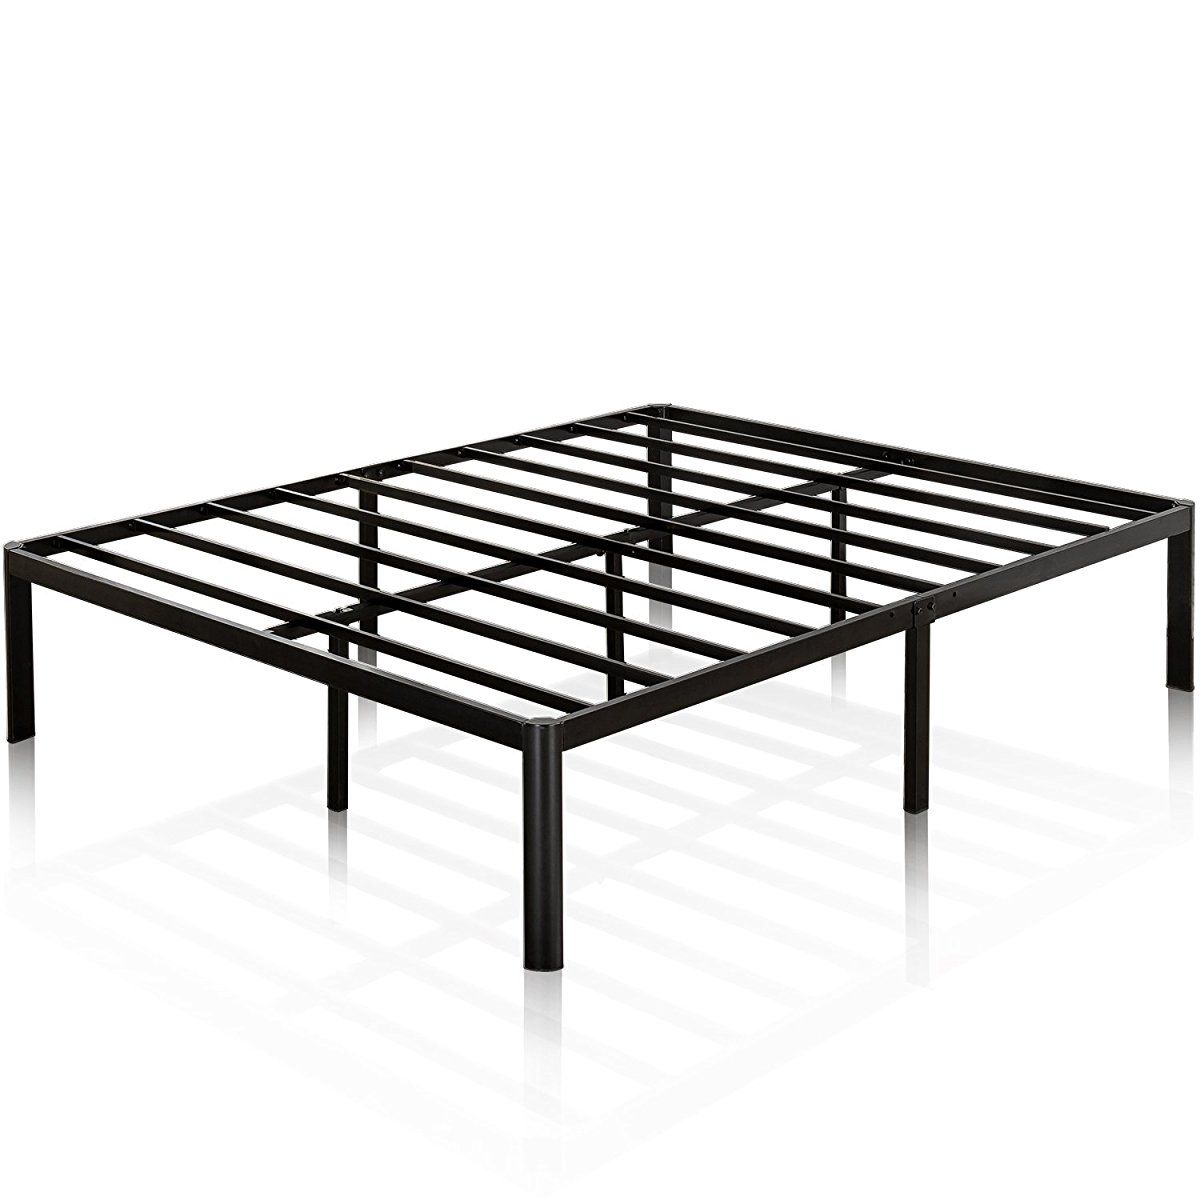 Zinus 16 Inch Metal Platform Bed Frame With Steel Slat Support Mattress Foundation Queen Metal Platform Bed Platform Bed Frame Bed Frame Mattress